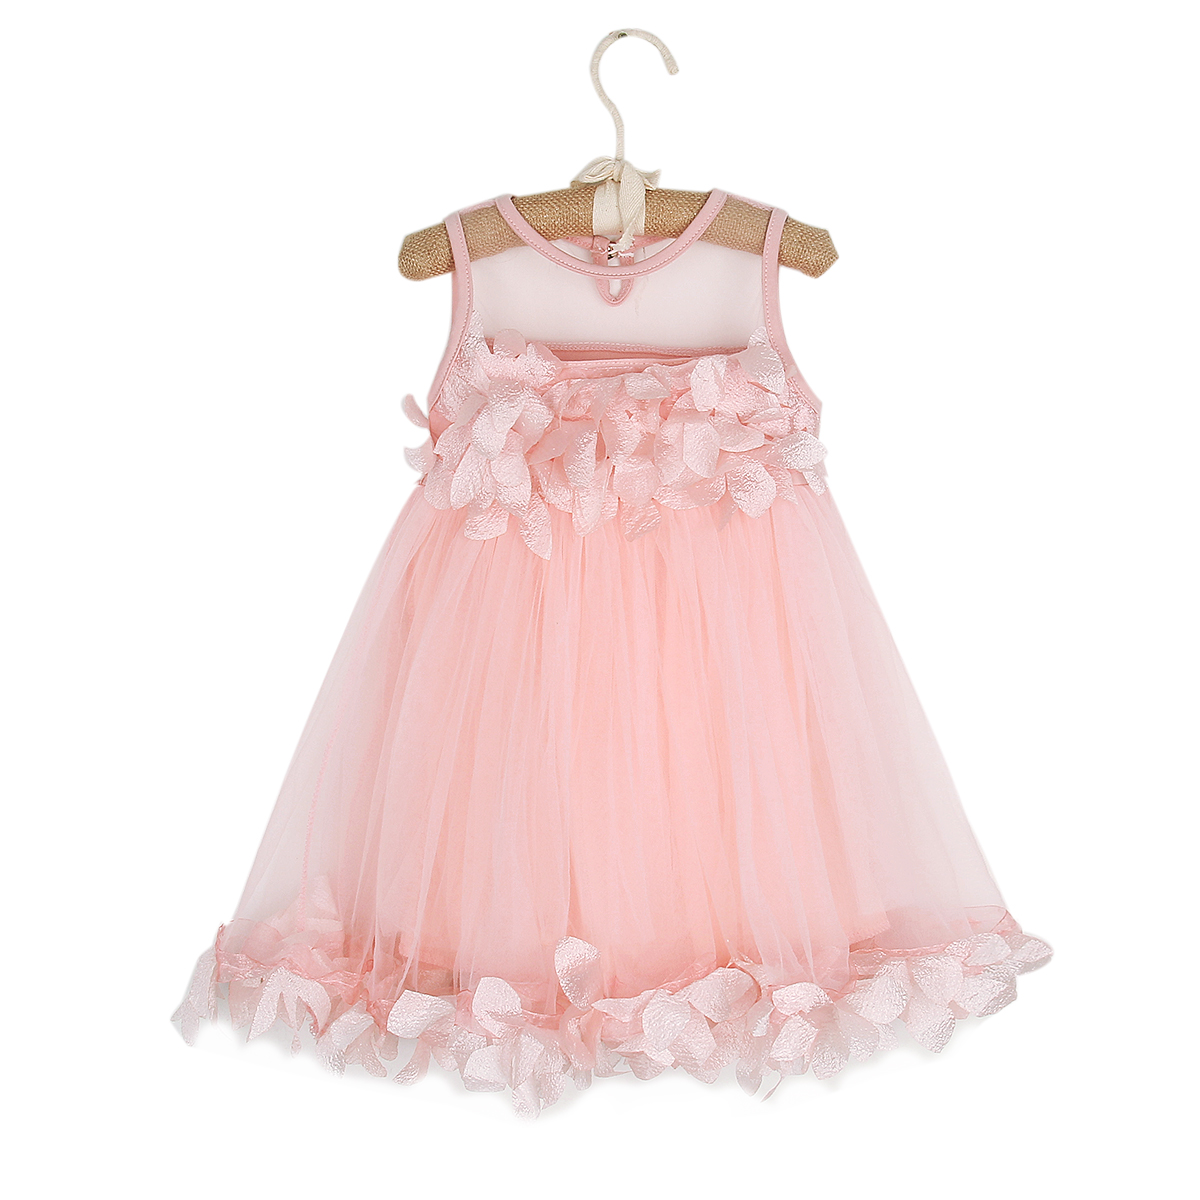 Toddler Kids Baby Girls Summer Princess Mesh Tutu Dresses Flower Sleeveless Birthday Prom Pageant Party Wedding Dresses 1T-6T toddler kids baby girls princess dress party pageant wedding dresses with waistband